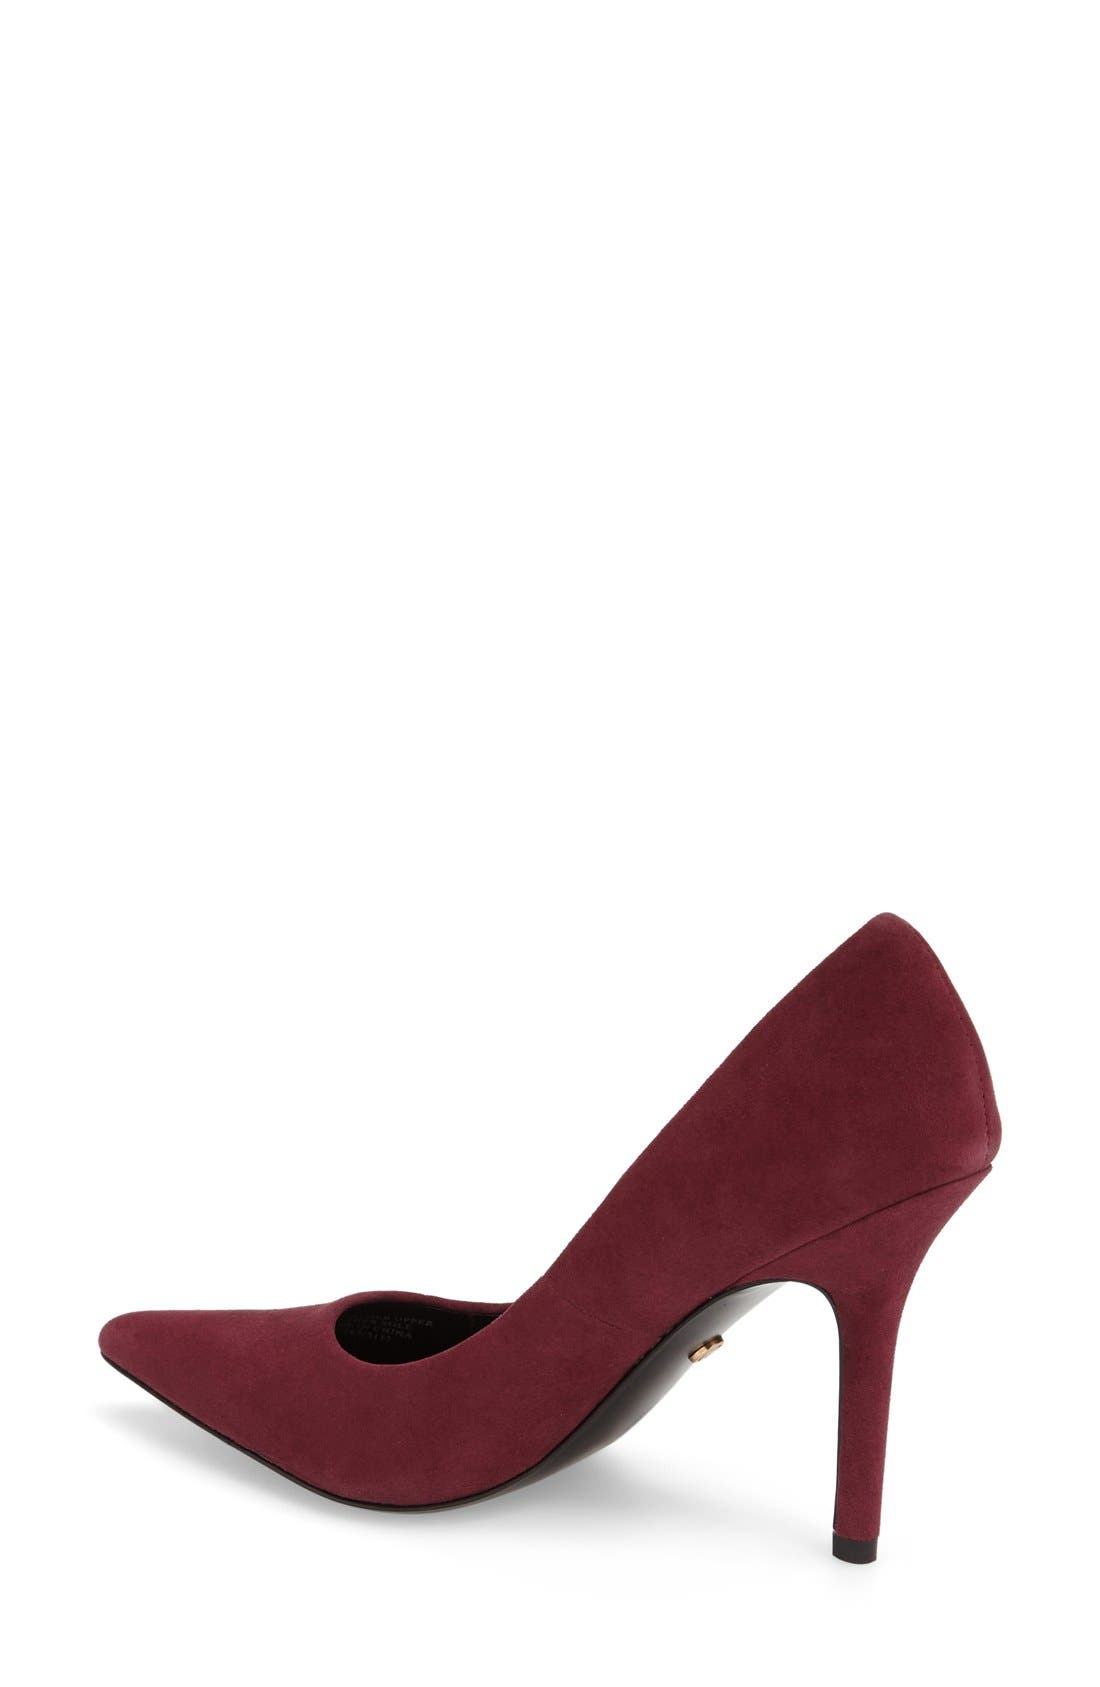 Charles David 'Sway II' Patent Leather Pump,                             Alternate thumbnail 2, color,                             Burgundy Suede